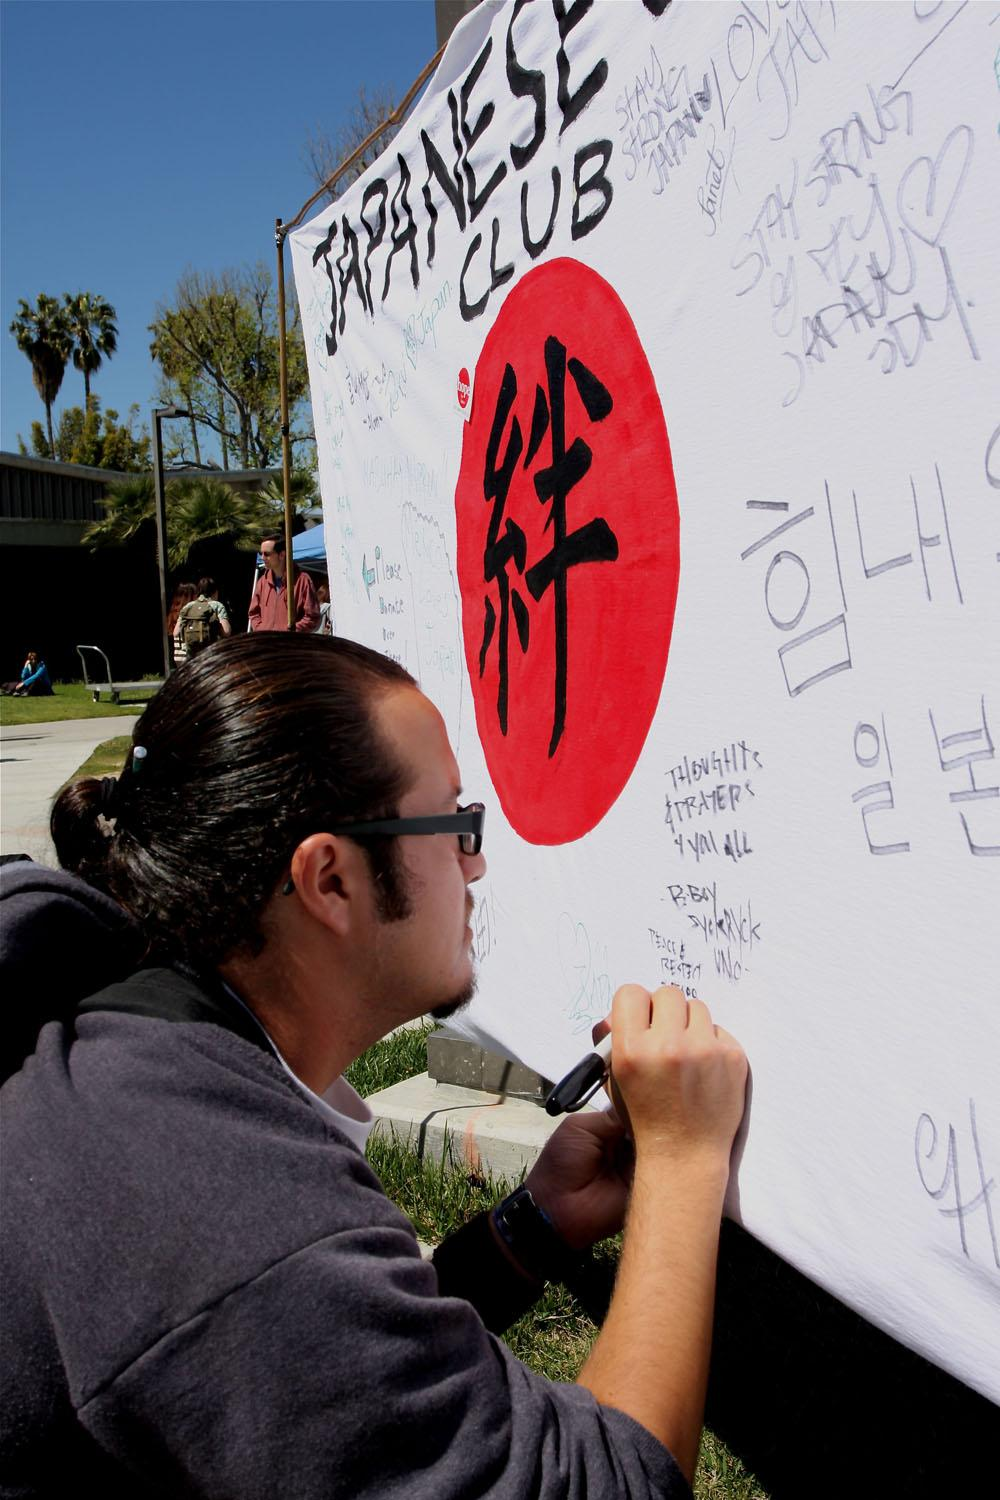 Richard Galvan 22, Art Major sends a personal message to Japan for the families who continue to suffer the terrible Tsunami which hit Japan.